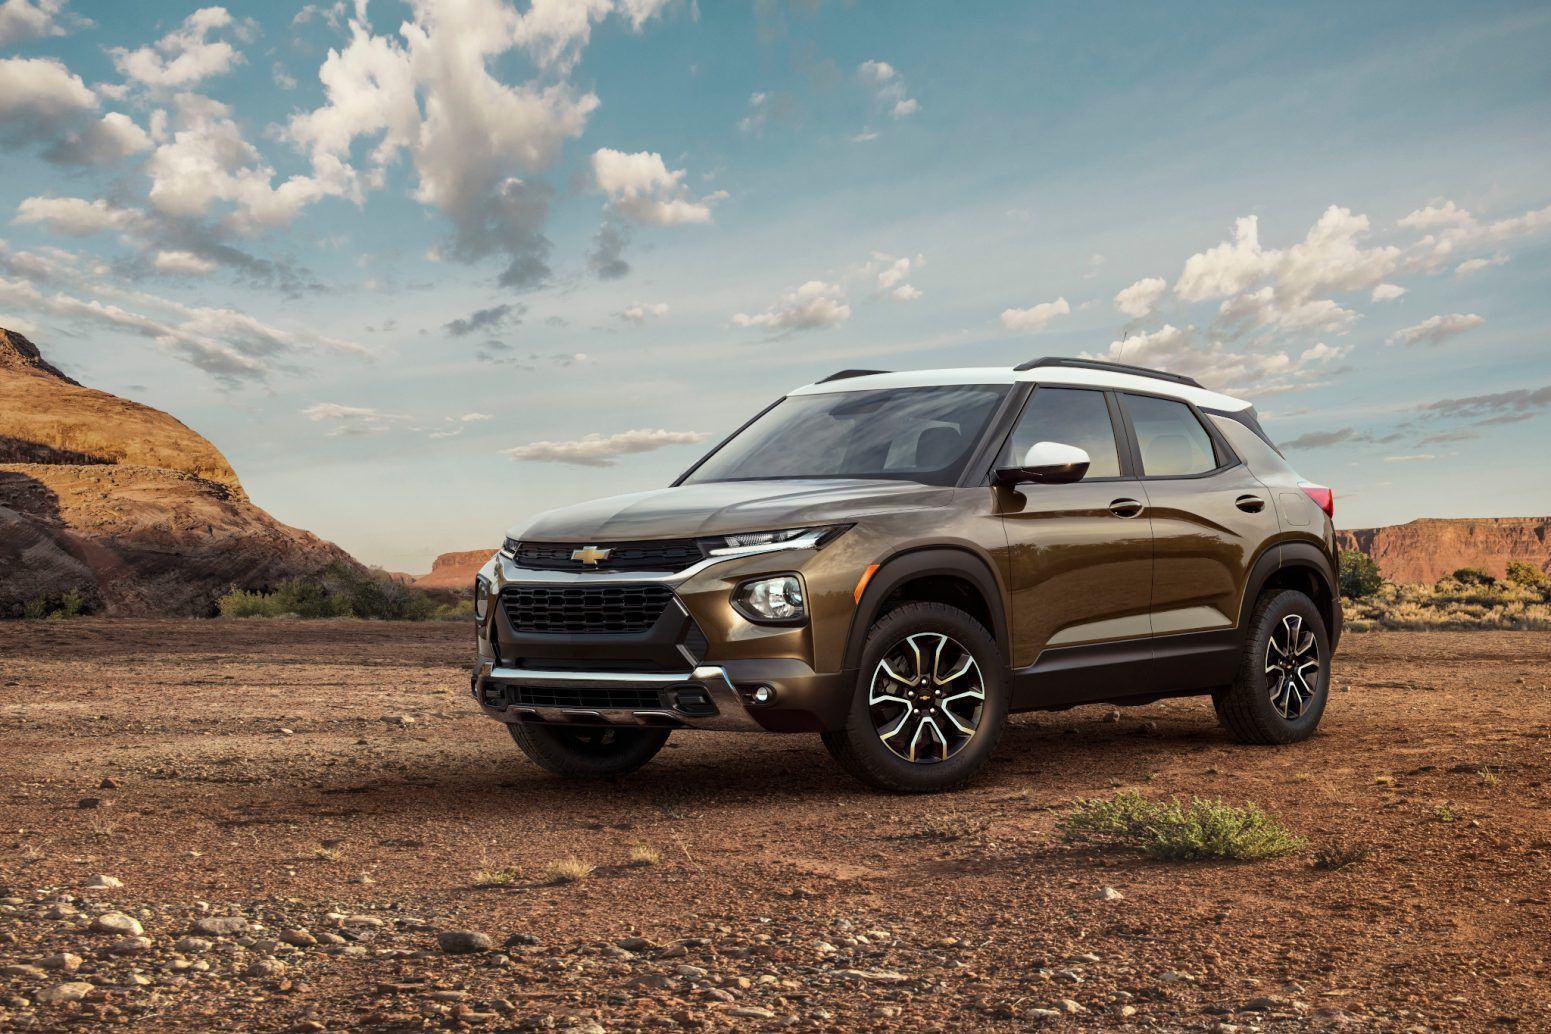 2021 Chevrolet Trailblazer Review Everything You Need To Know